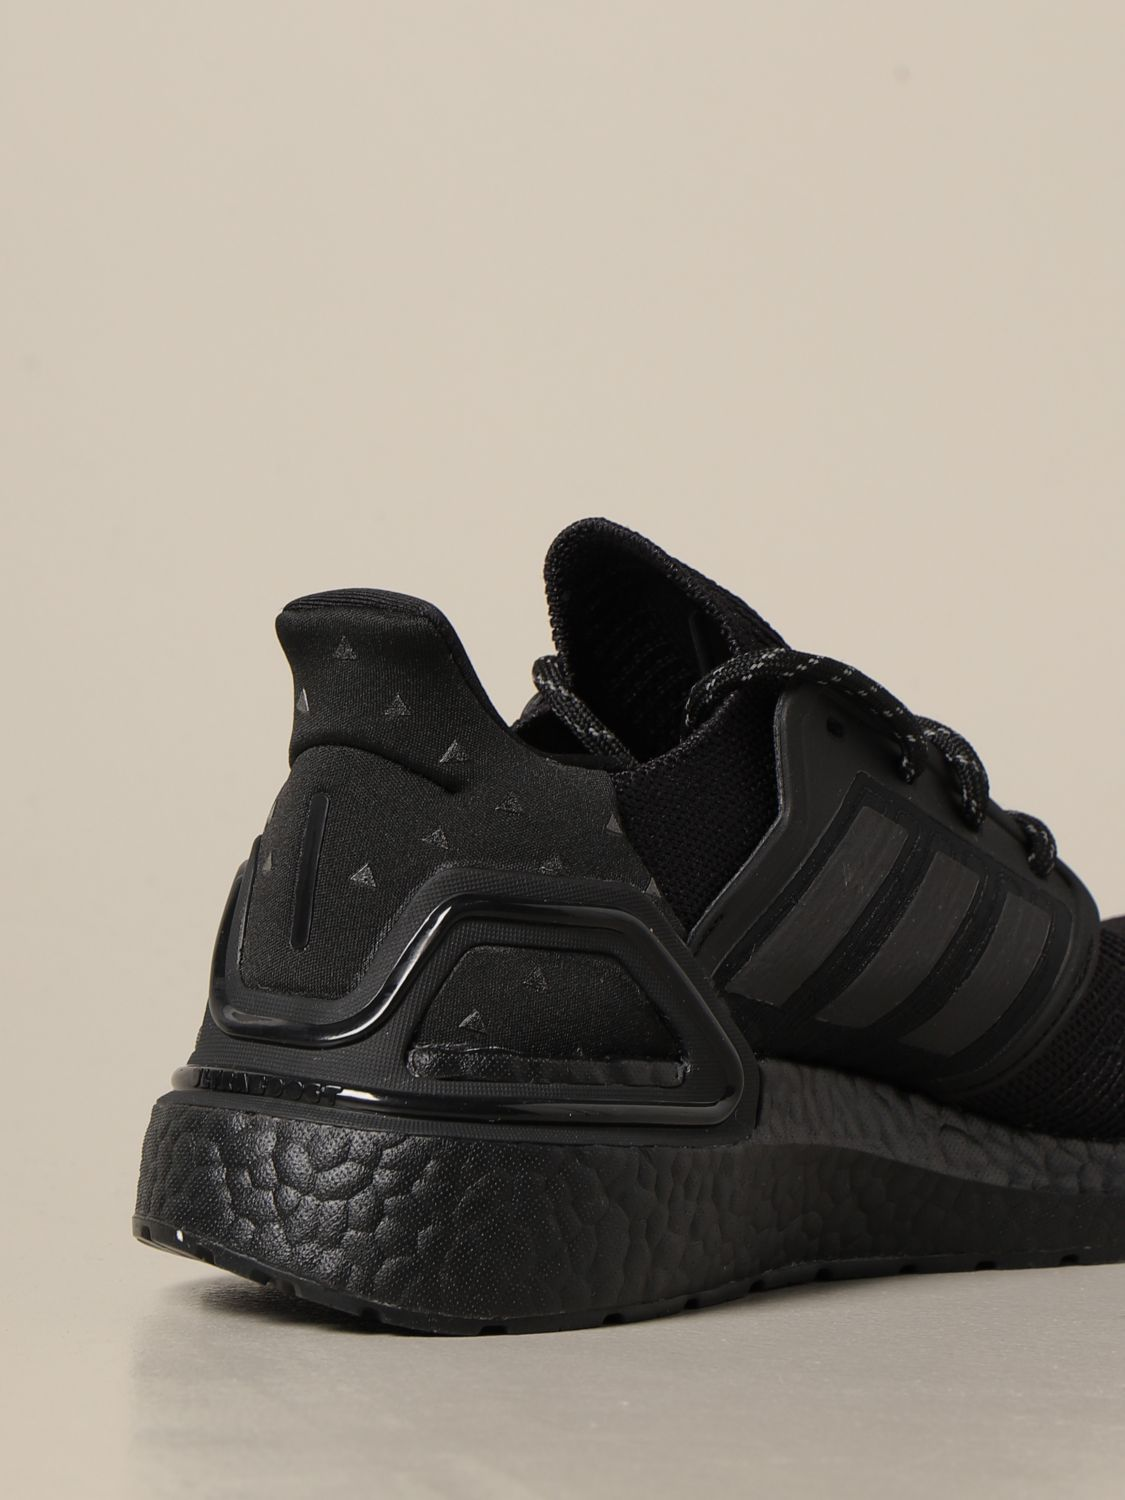 Trainers Adidas Originals By Pharrell Williams: Shoes men Adidas Originals By Pharrell Williams black 3